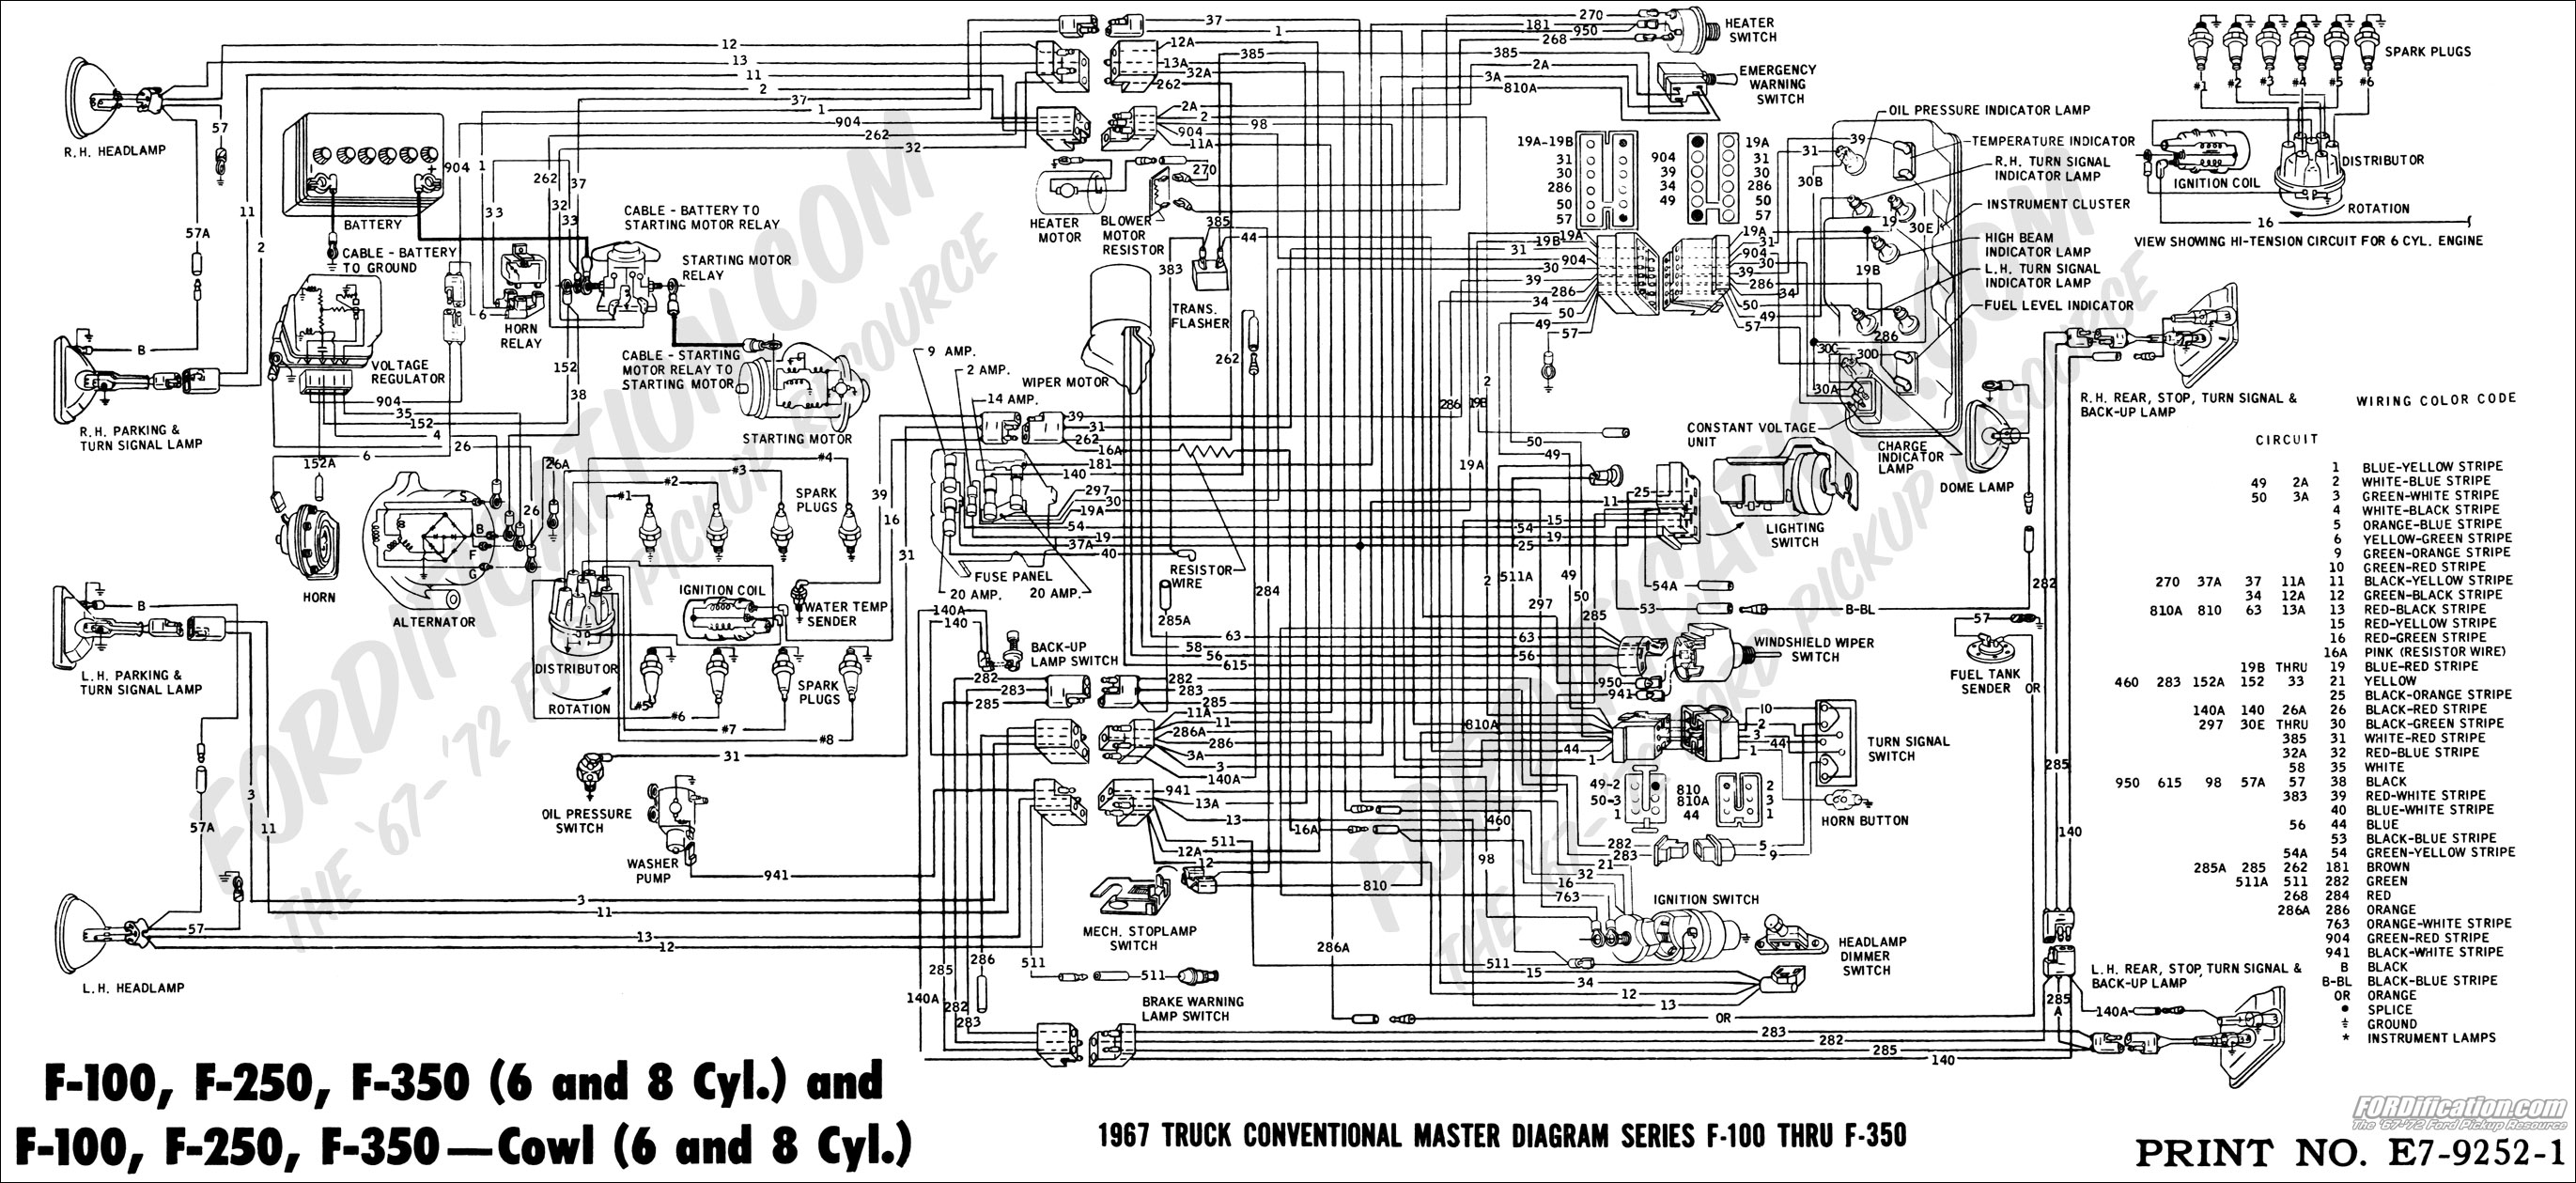 ford e350 engine drawing 2004 ford e350 wiring diagram wire center u2022 rh linxglobal co